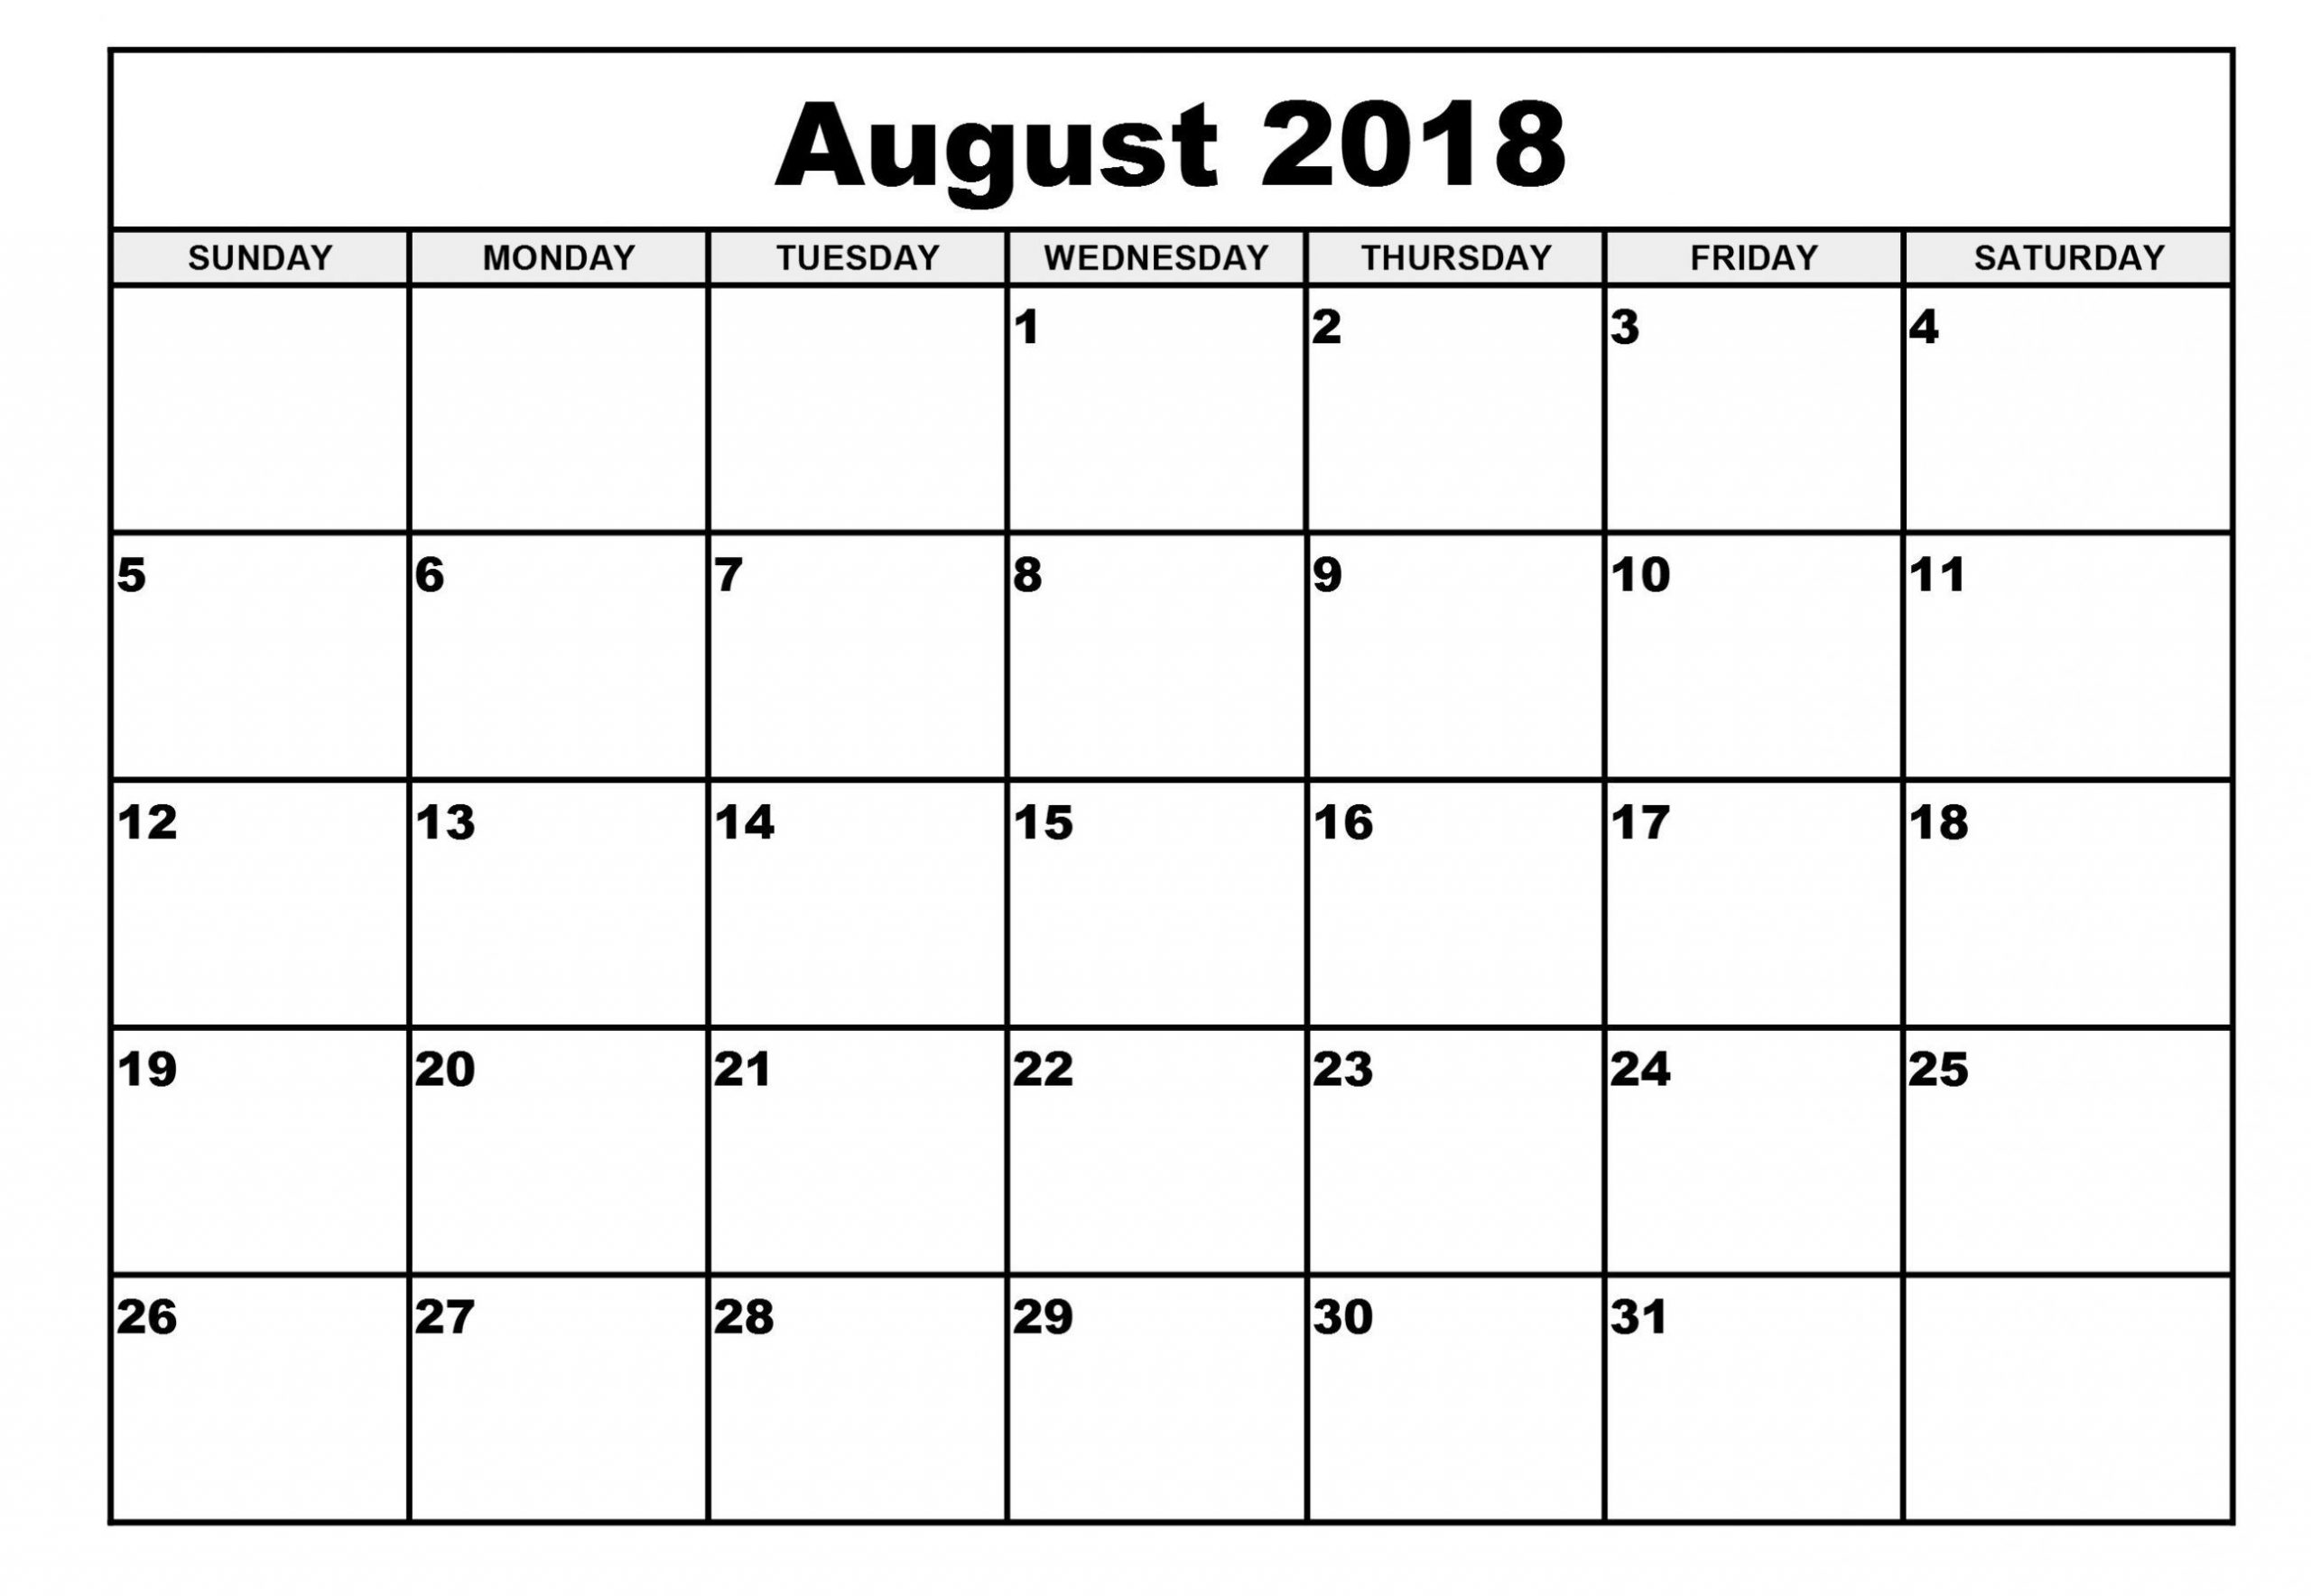 Monthly Calendar August Month 2018 | Printable Calendar